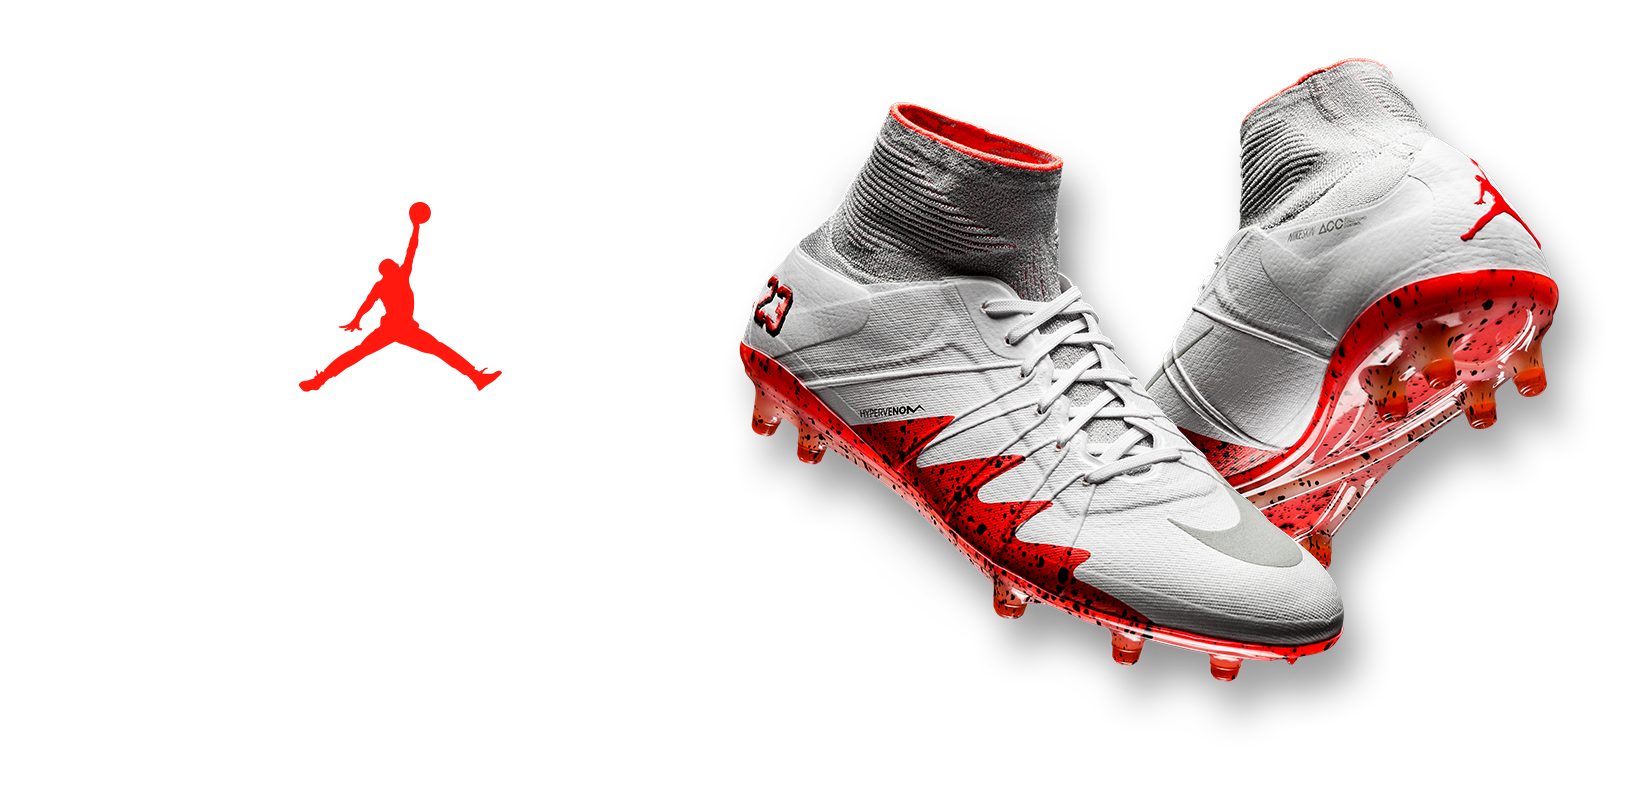 Buy Your Neymar X Jordan Hypervenom On Unisportstore Com Now